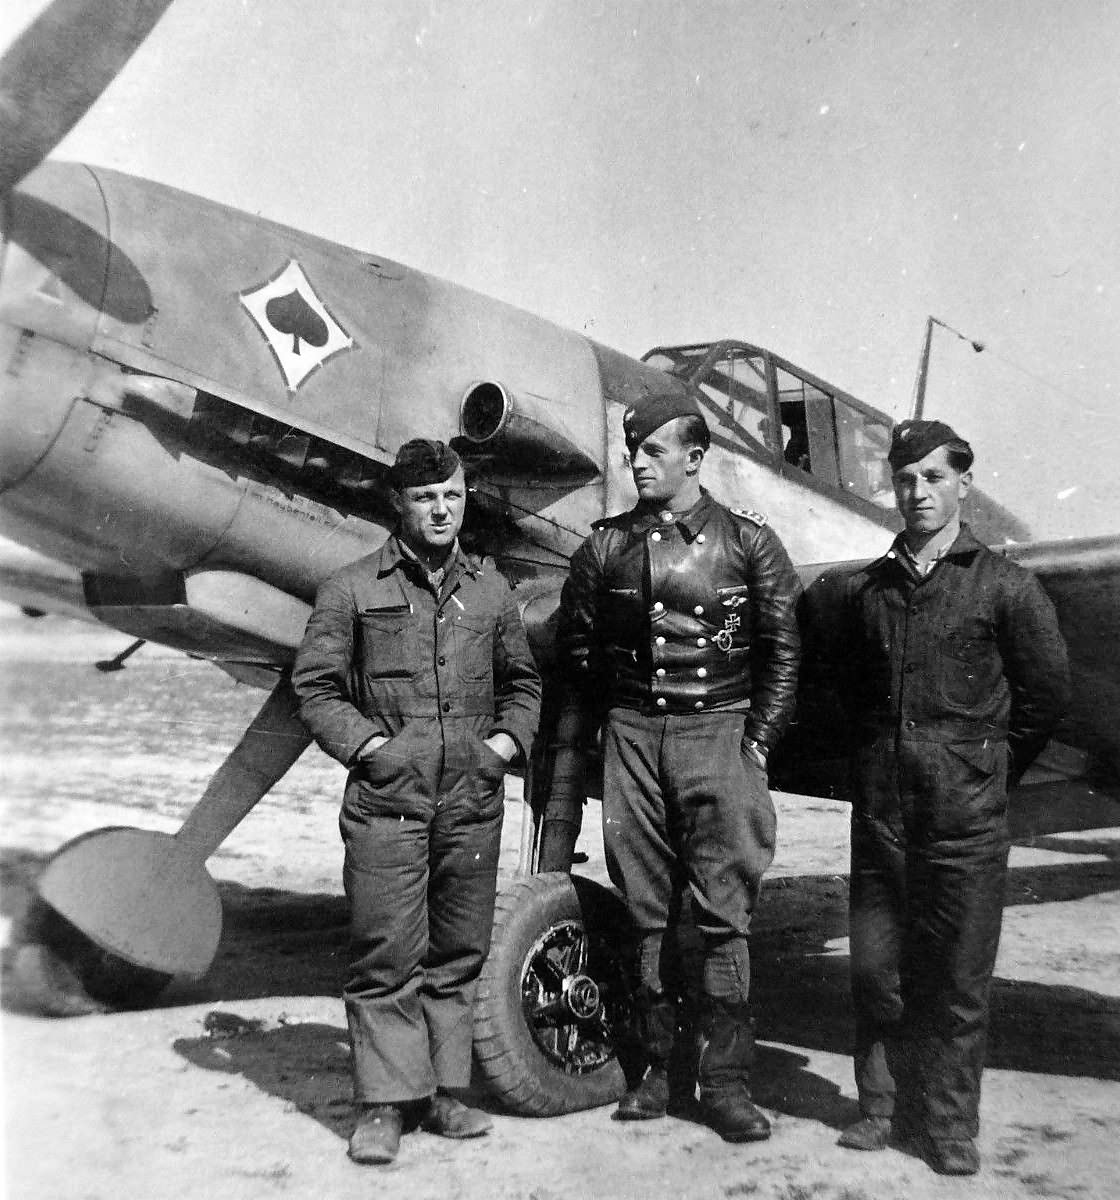 Bf109 of the JG 53 As Pik